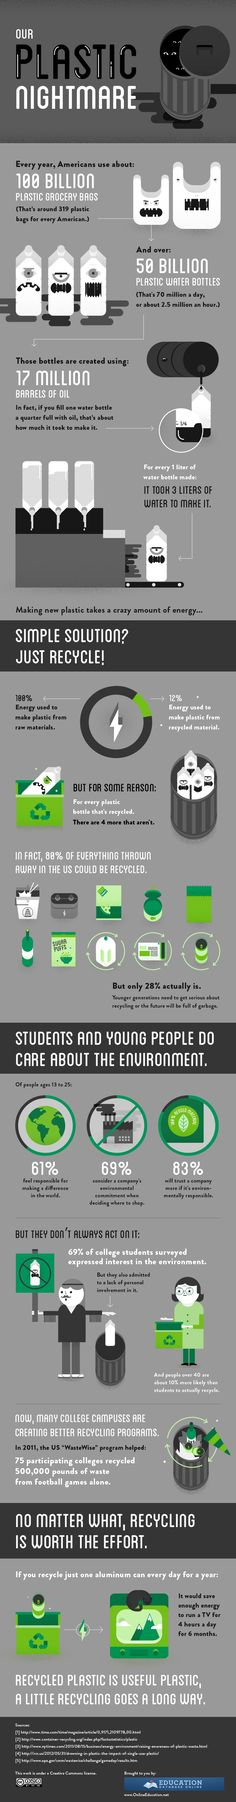 Recycle! It's more important than you may think